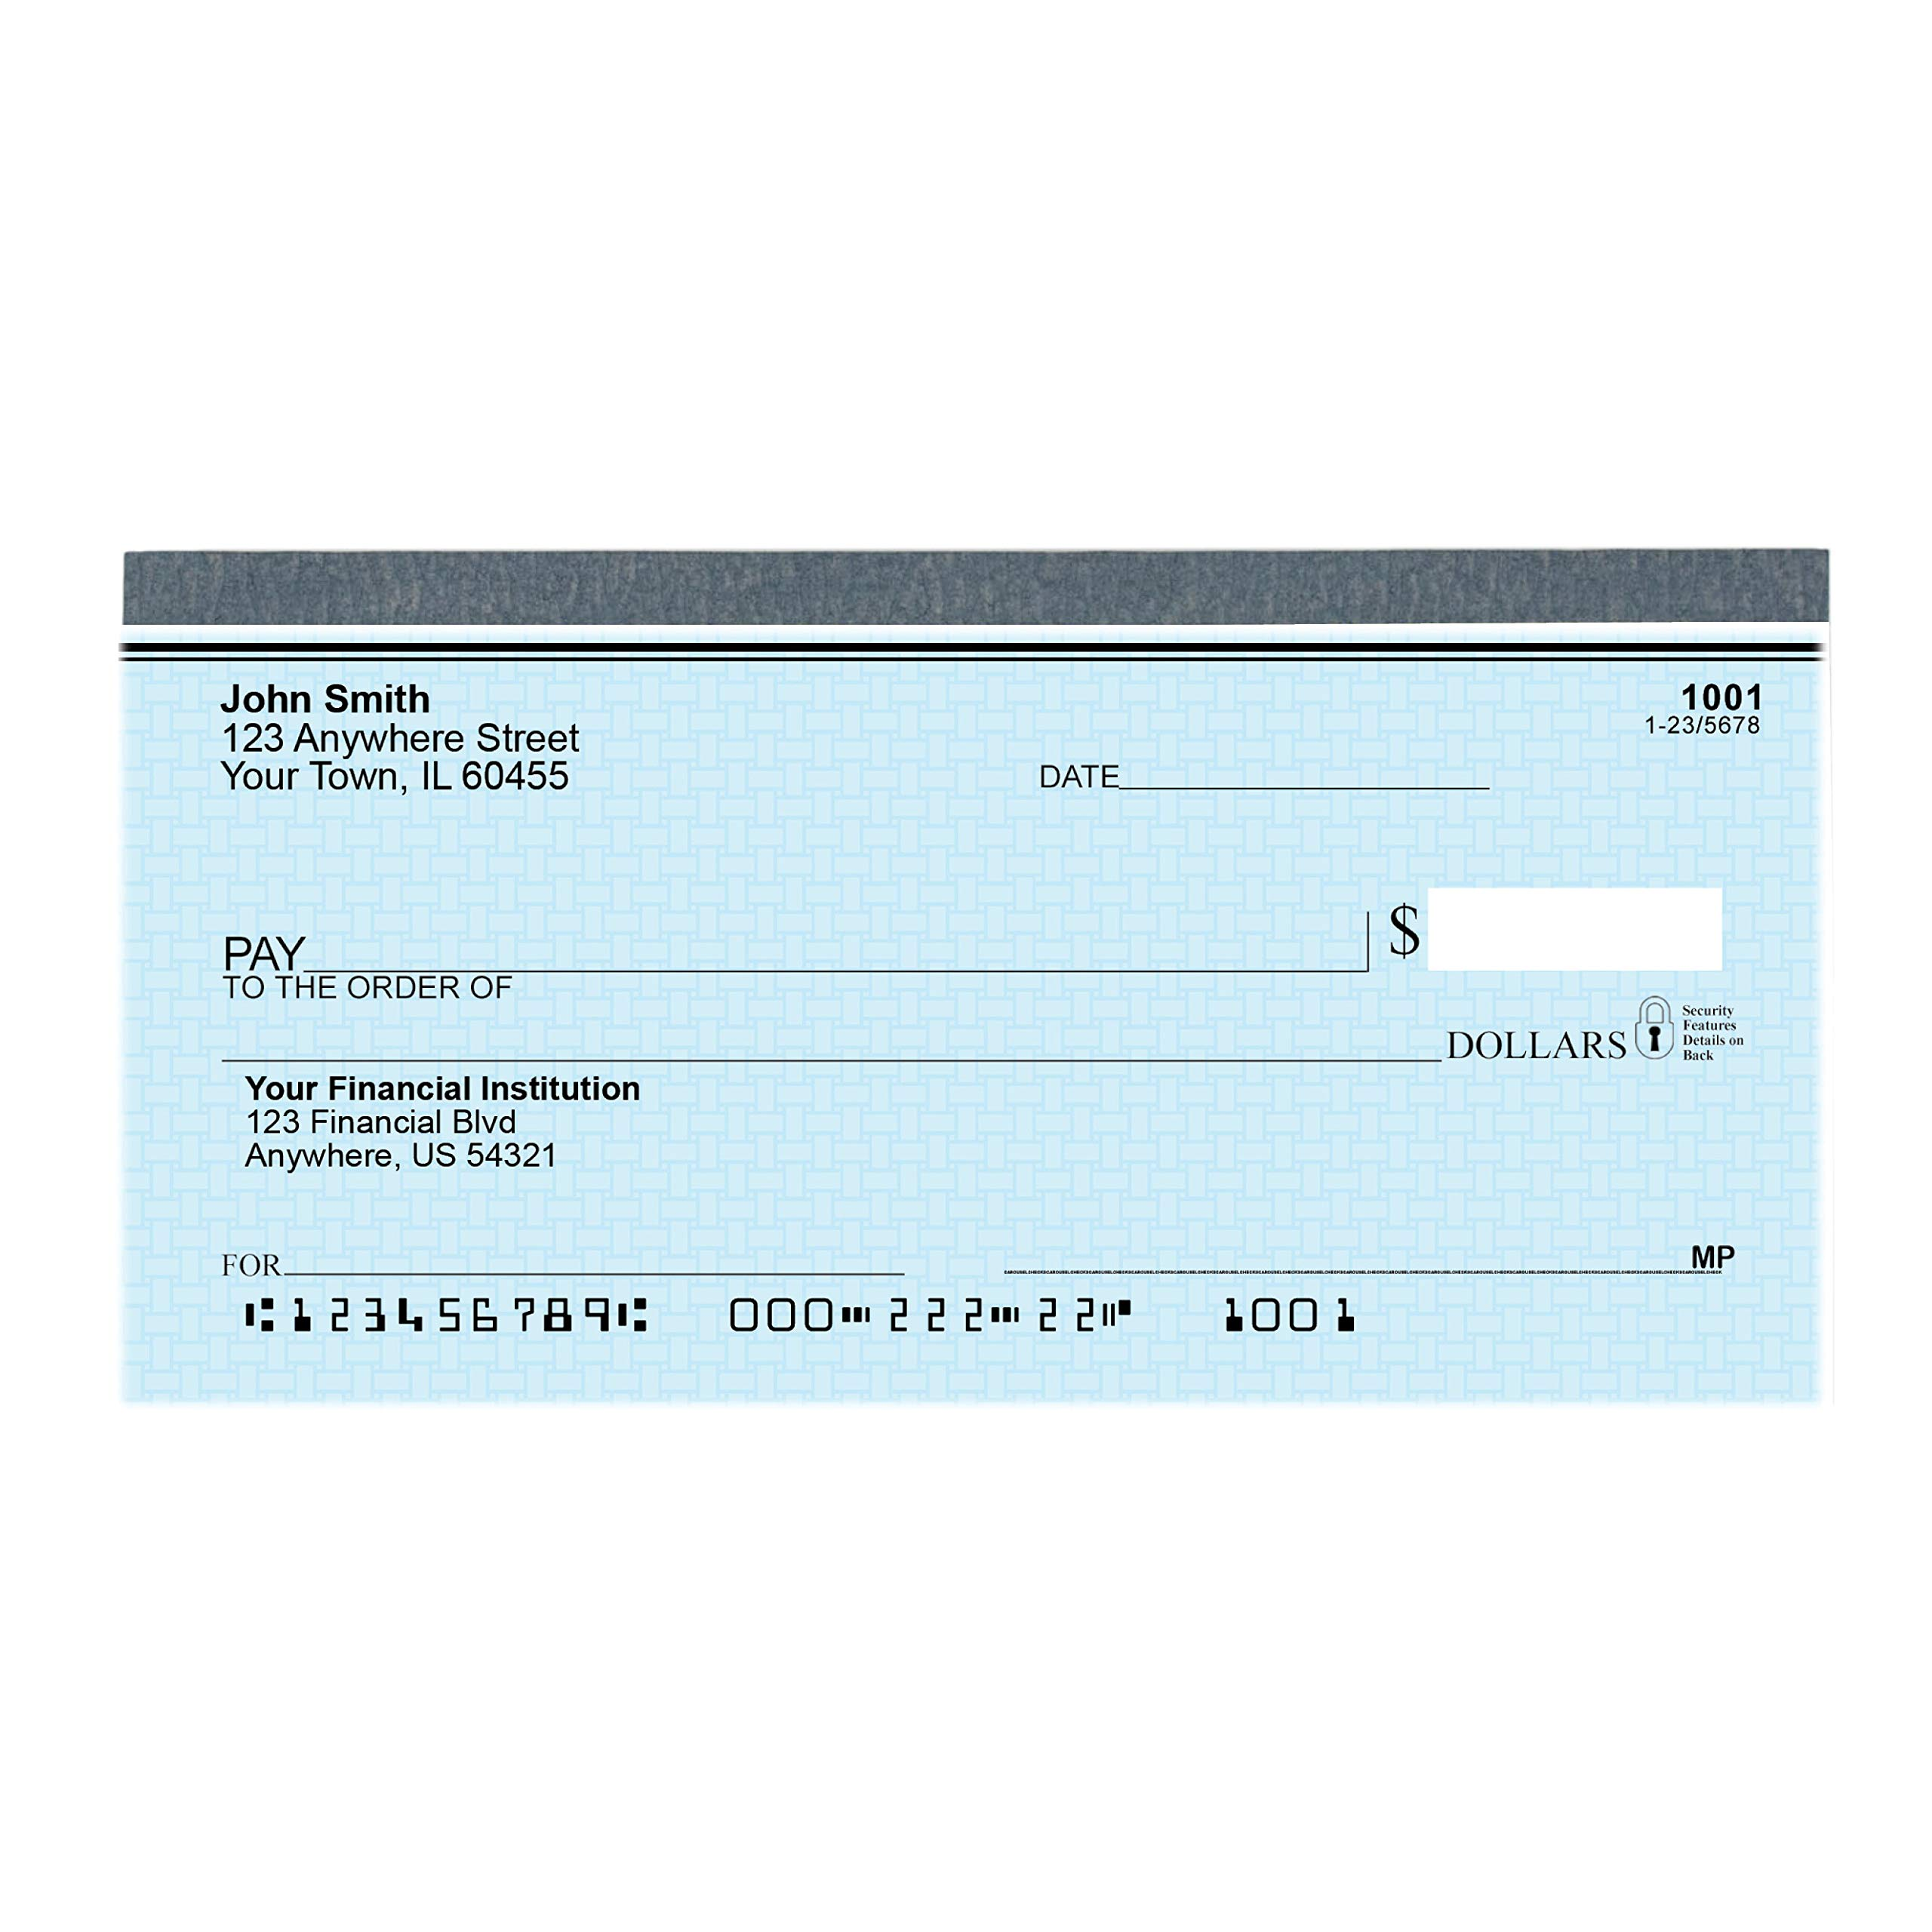 Top Tear Blue Safety Personal Checks - Value Priced (4 Boxes of Singles, Qty. 500) by Carousel Checks Inc.